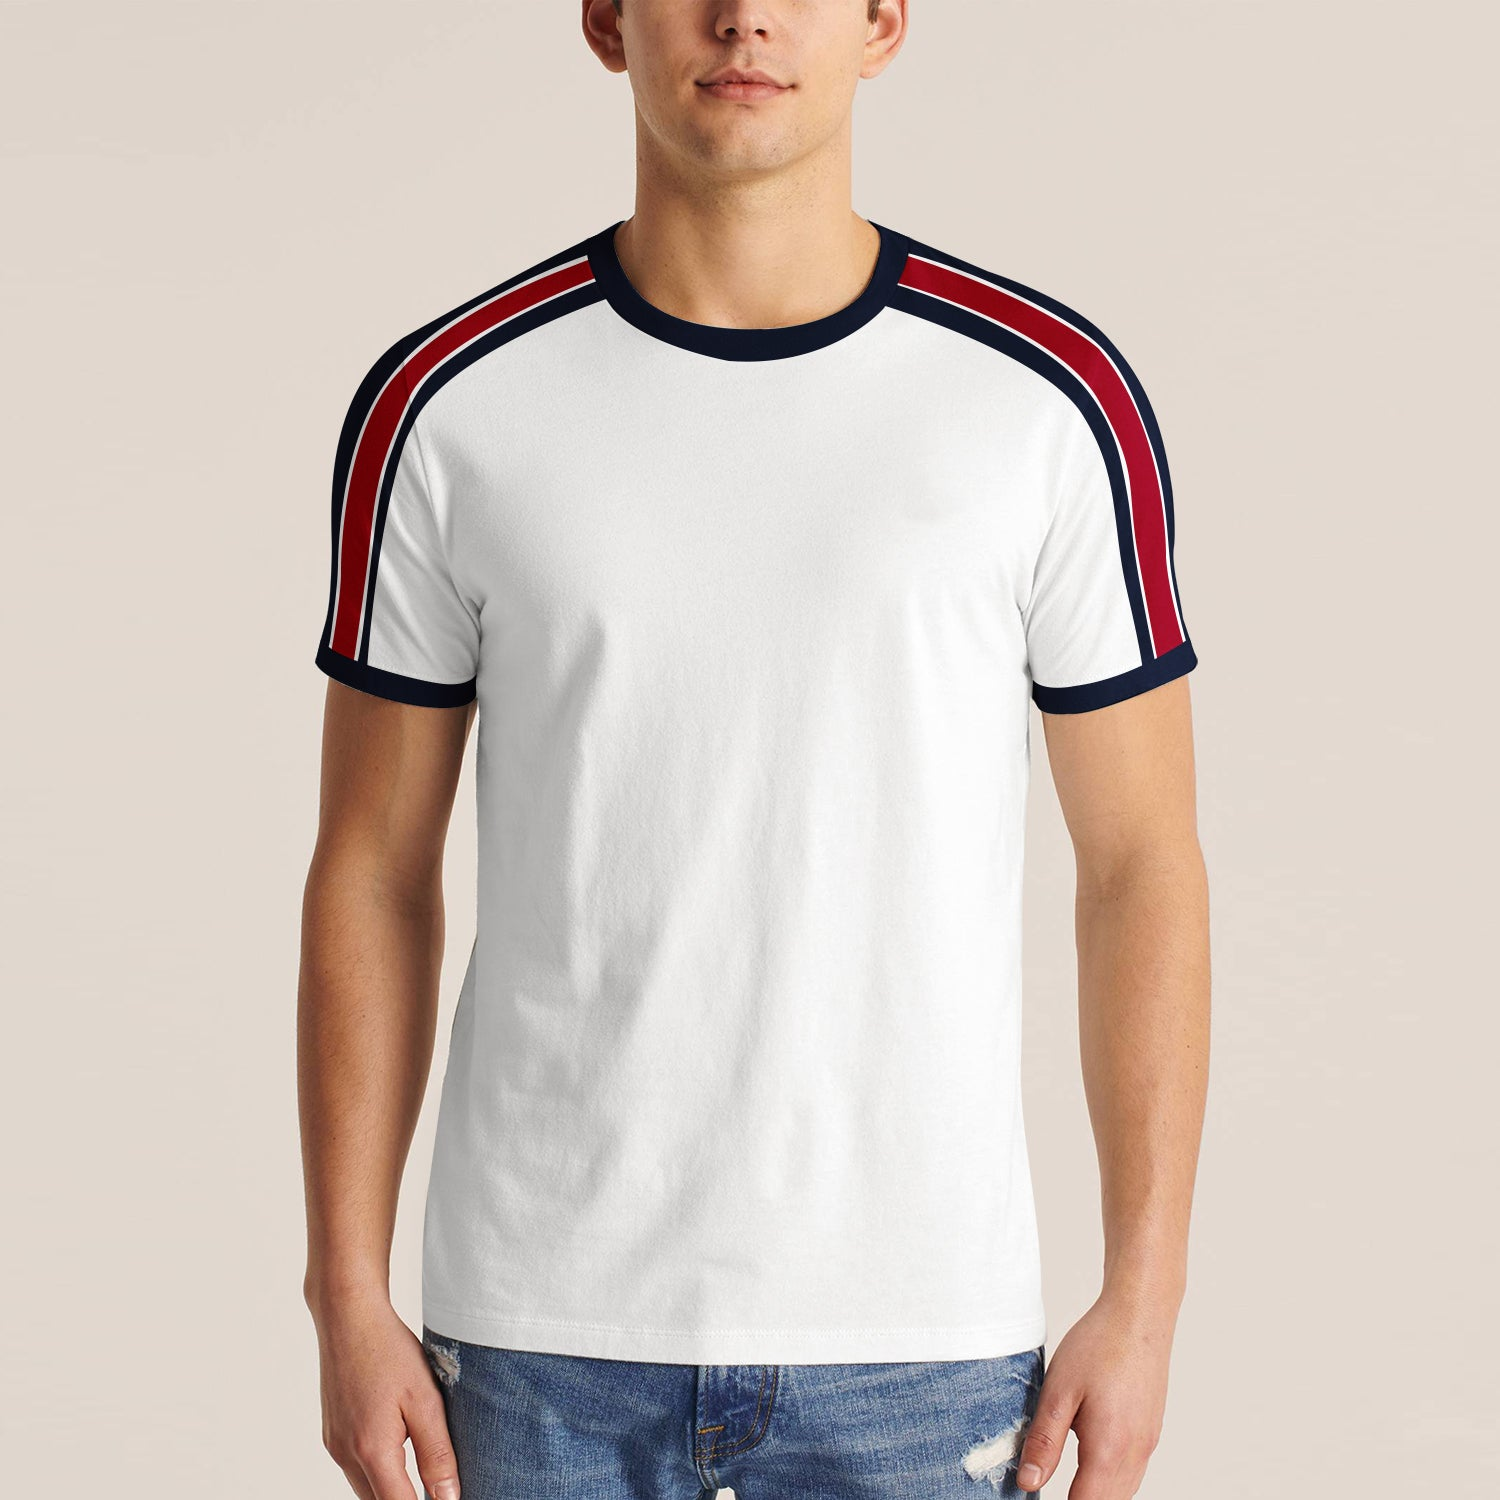 Spring Field Stylish Summer Tee Shirt For Men-White with Stripe-BE11376